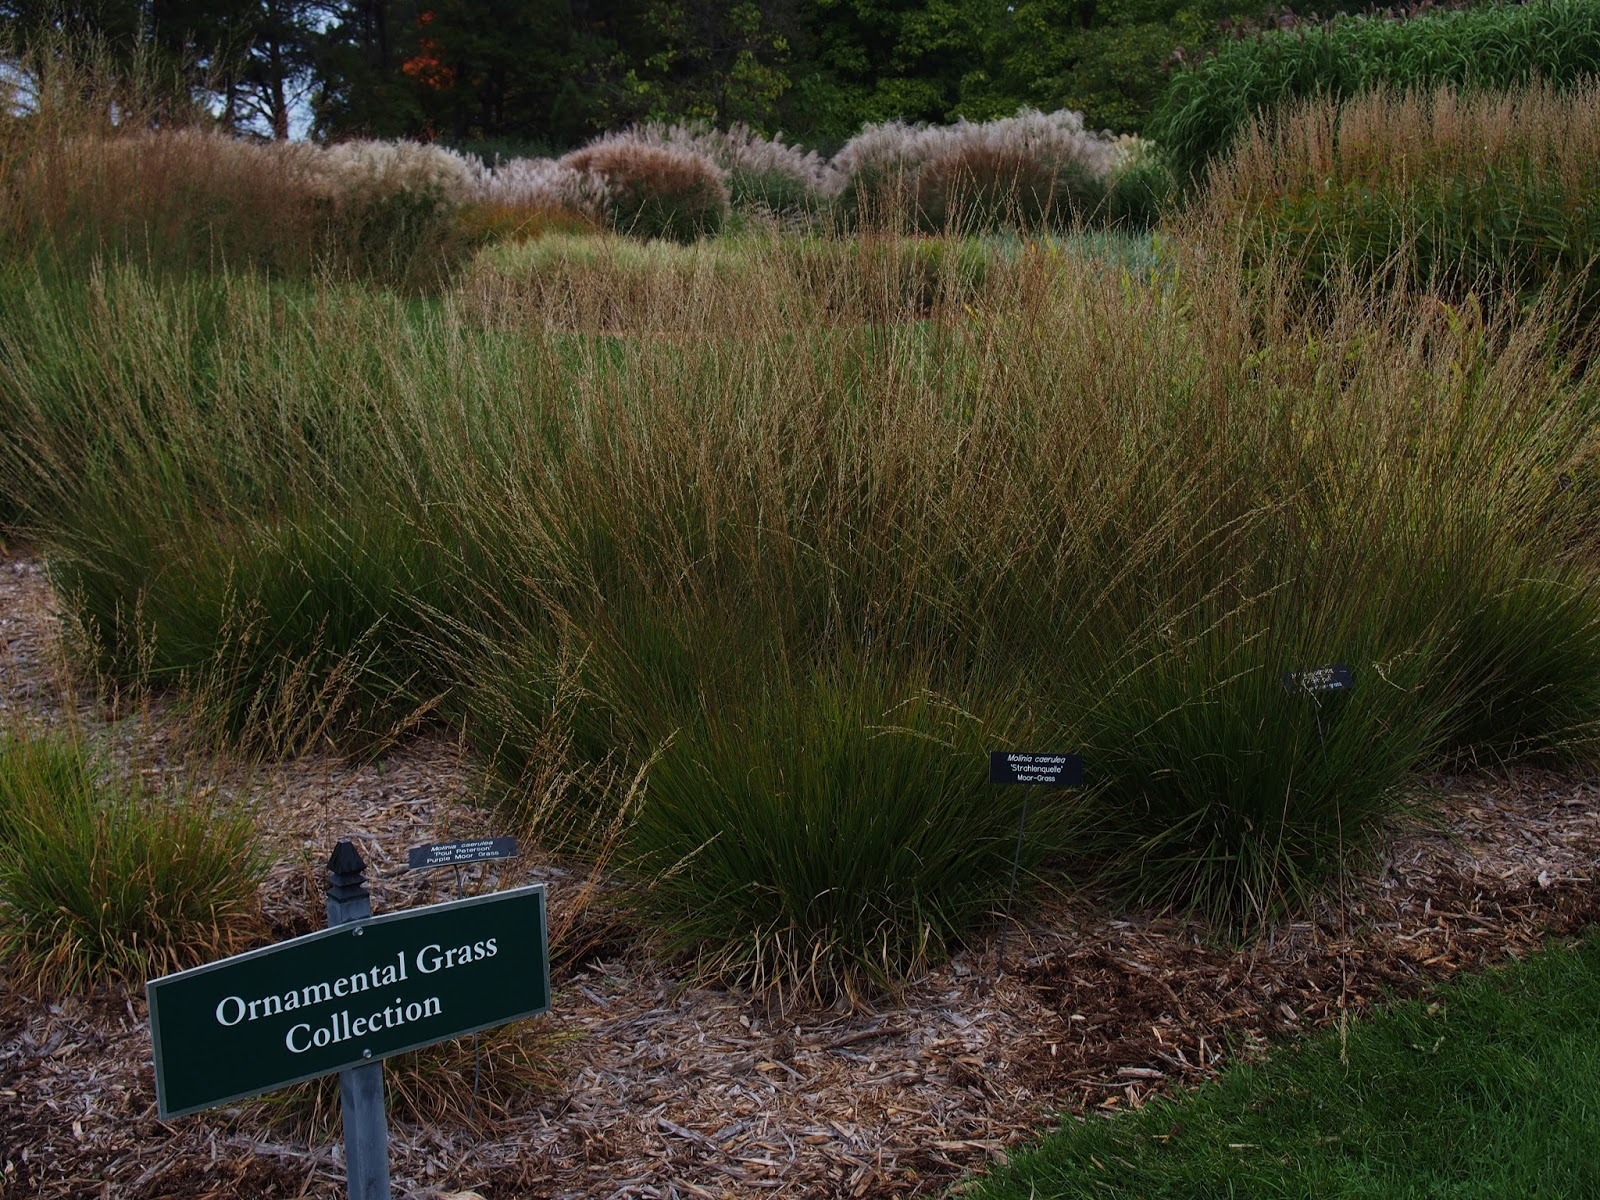 30th anniversary highlights ornamental grasses trend for for Variegated ornamental grass varieties